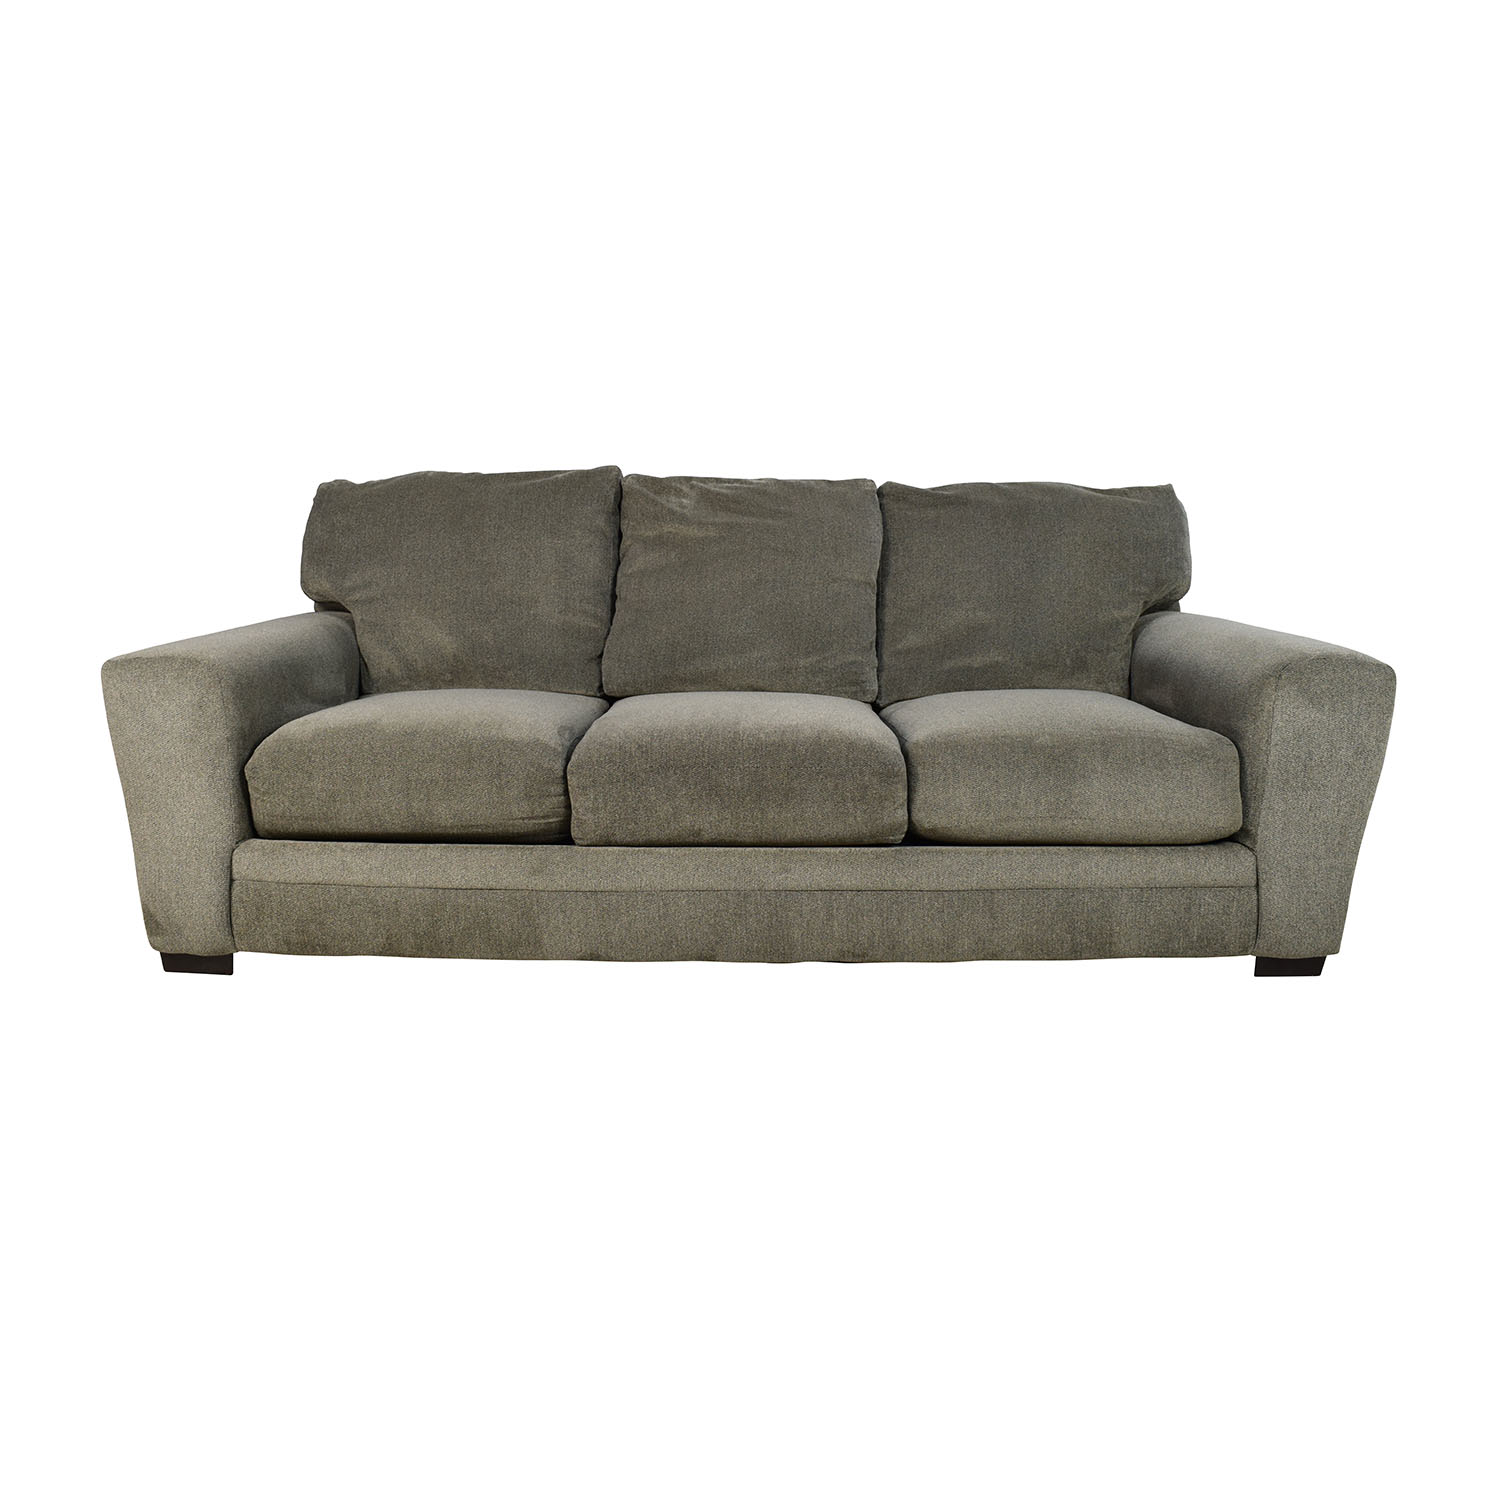 Awesome Bobs Furniture Bobs Furniture Gray Jackson Sofa Classic Sofas ...